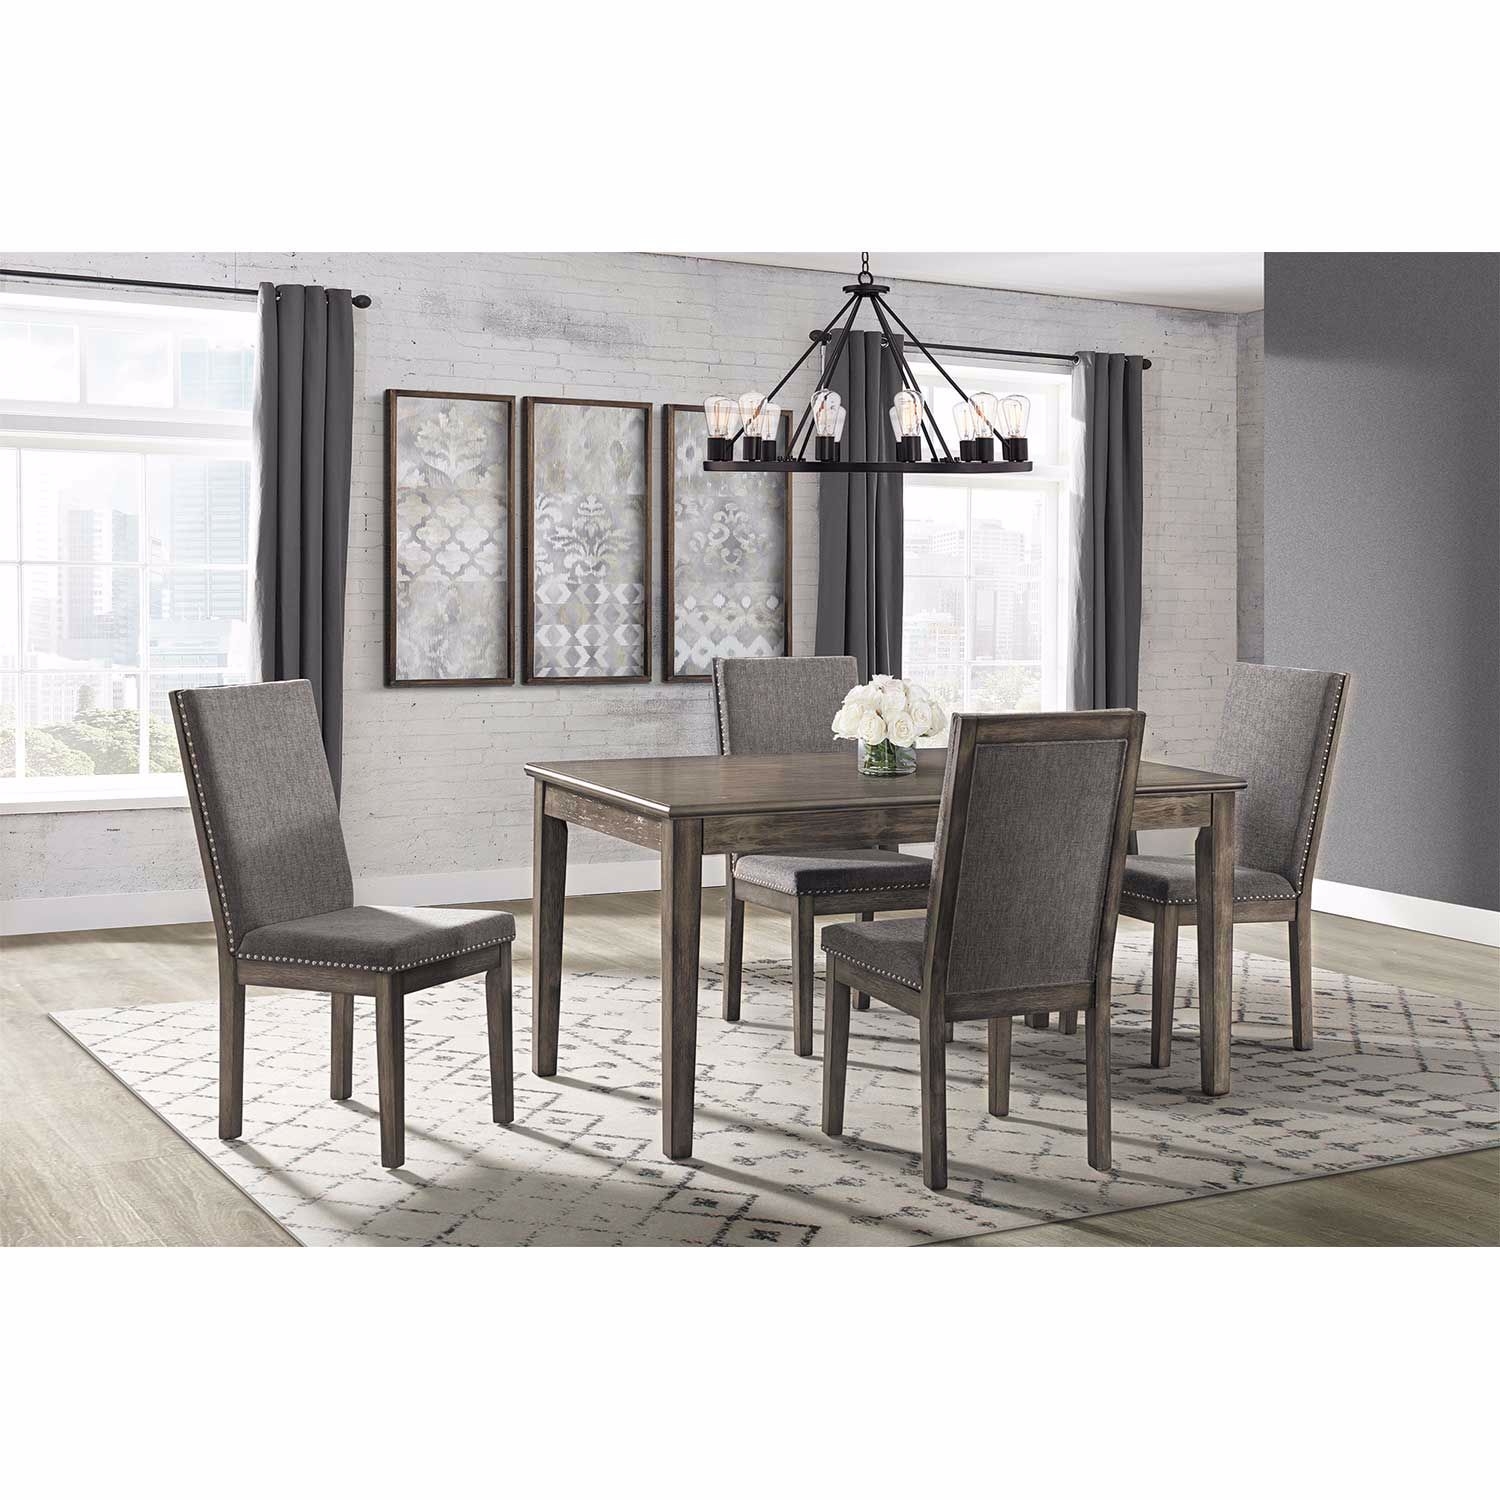 Picture of South Paw Rectangular Dining Table